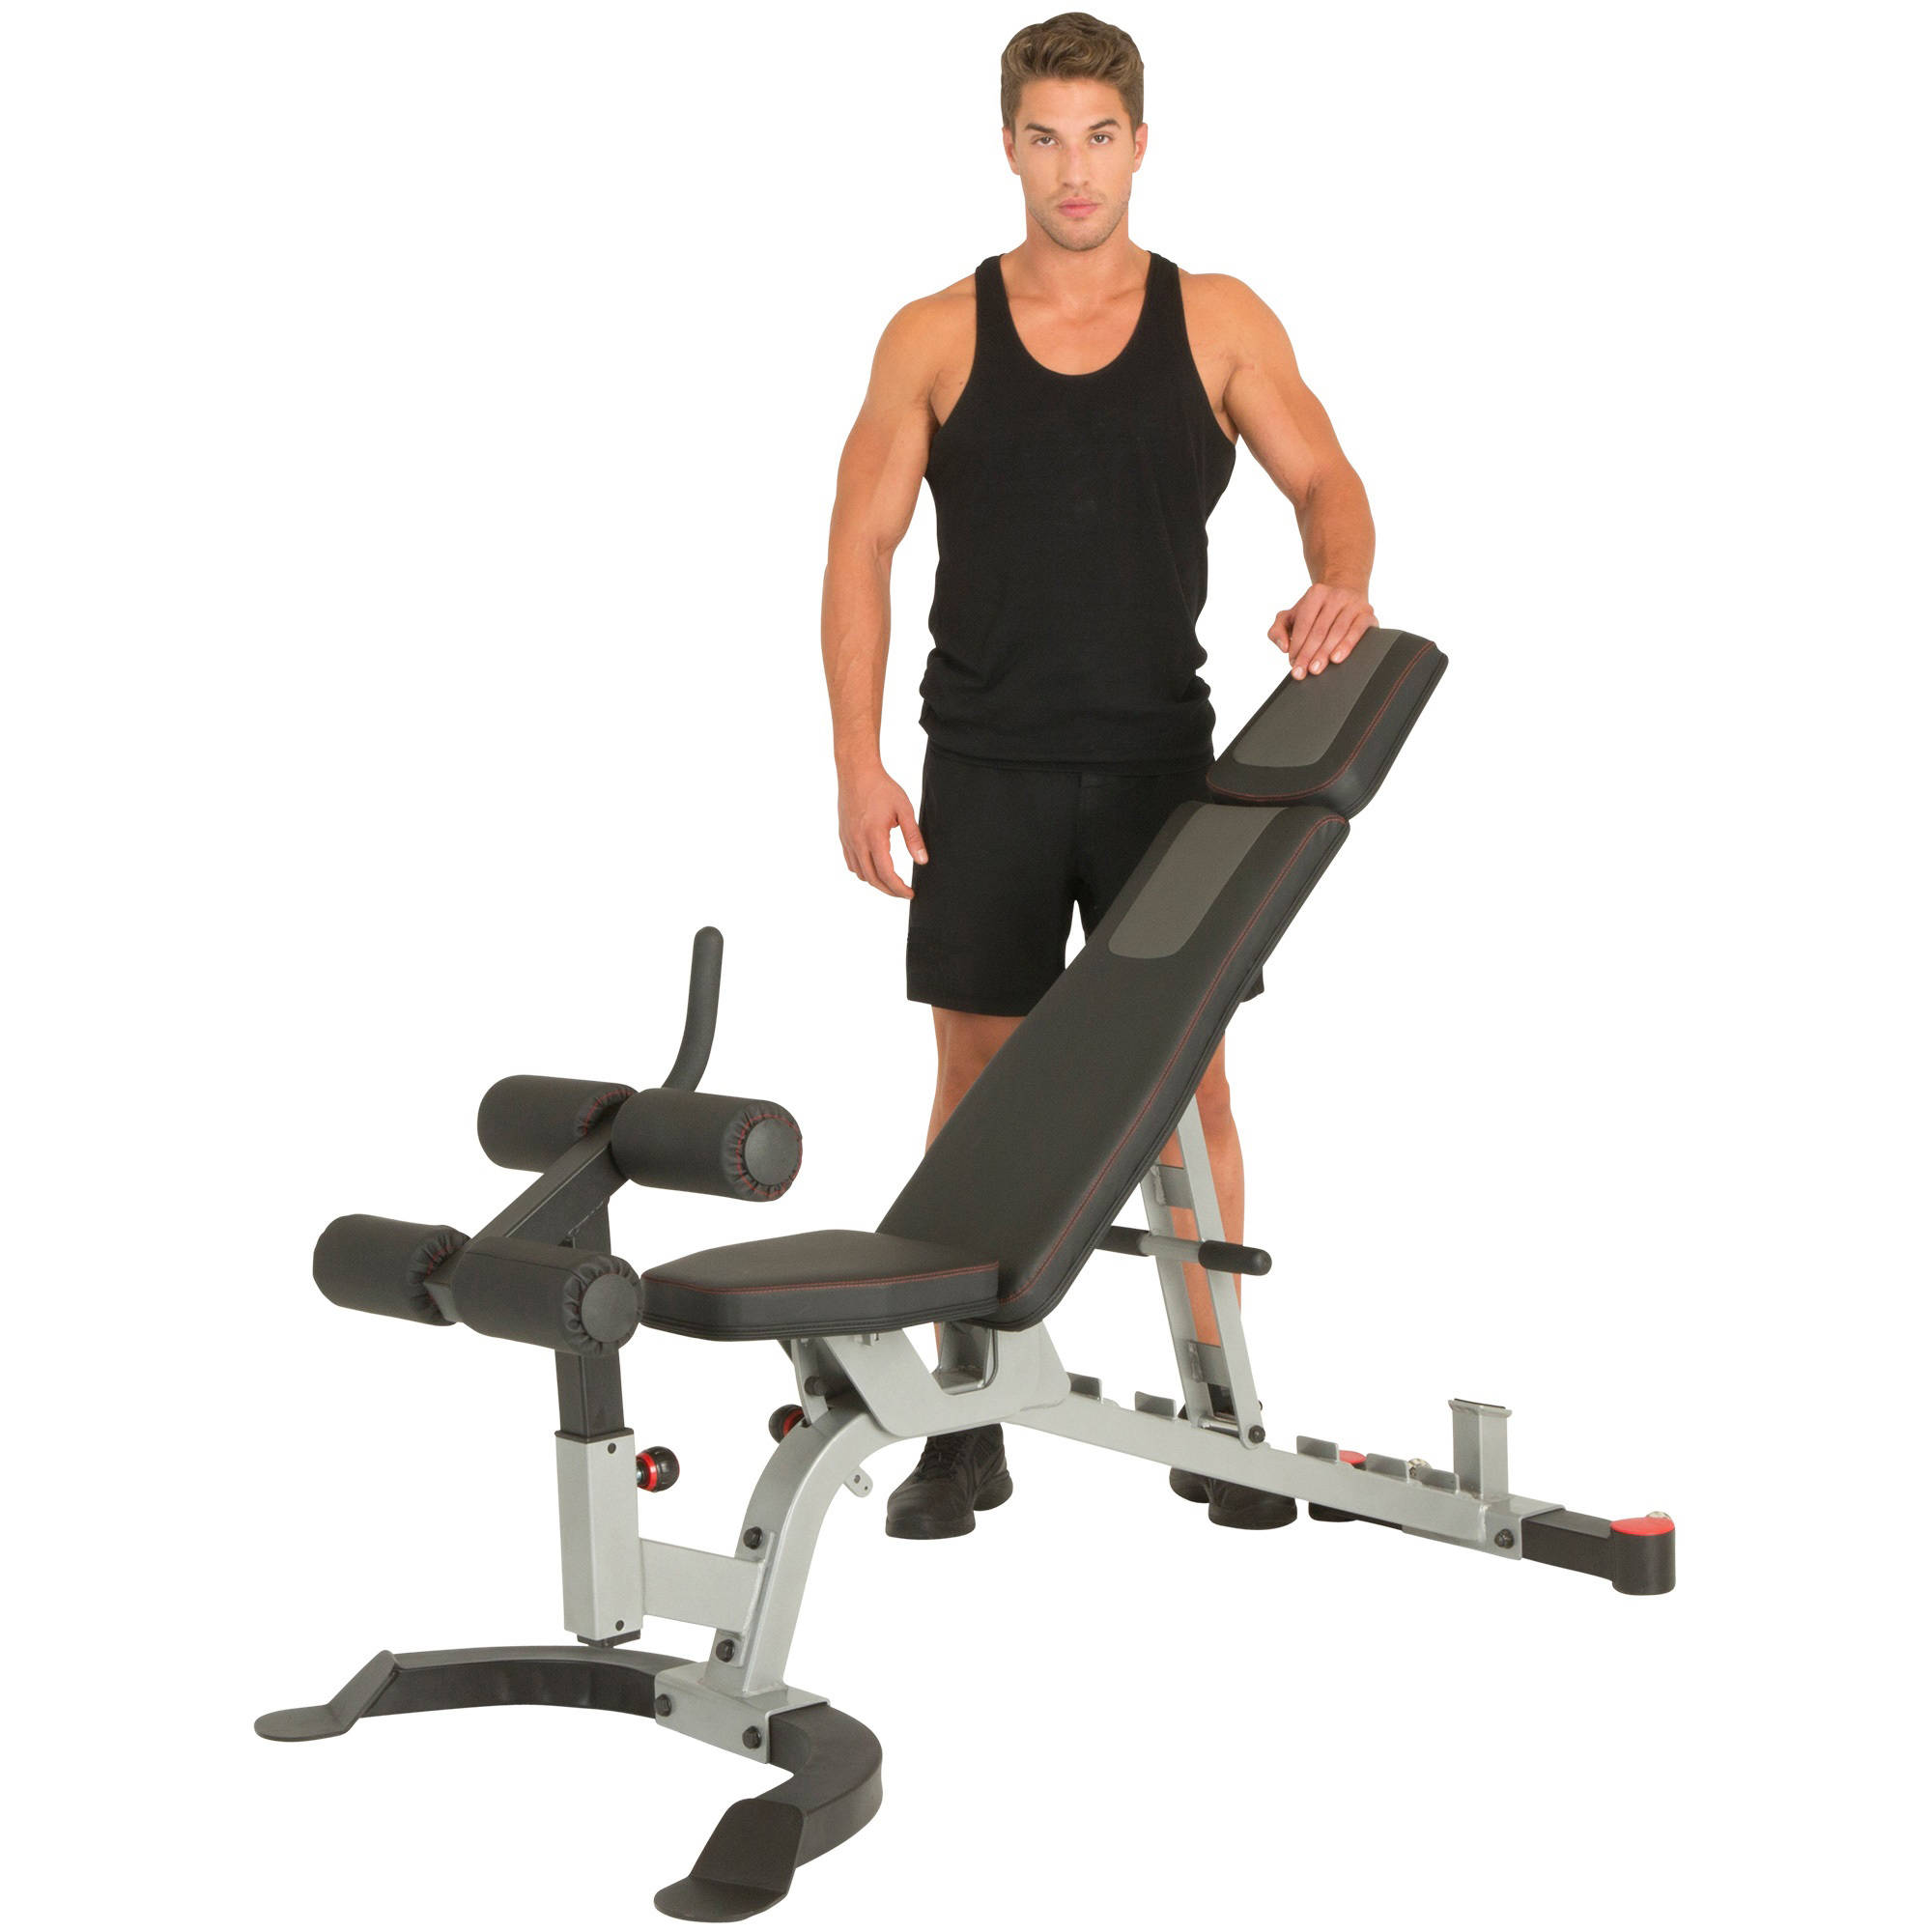 IRONMAN Triathlon X-Class 1500 lb Light Commercial Utility Weight Bench with Detachable Leg Lock-Down and Limited Lifetime Warranty